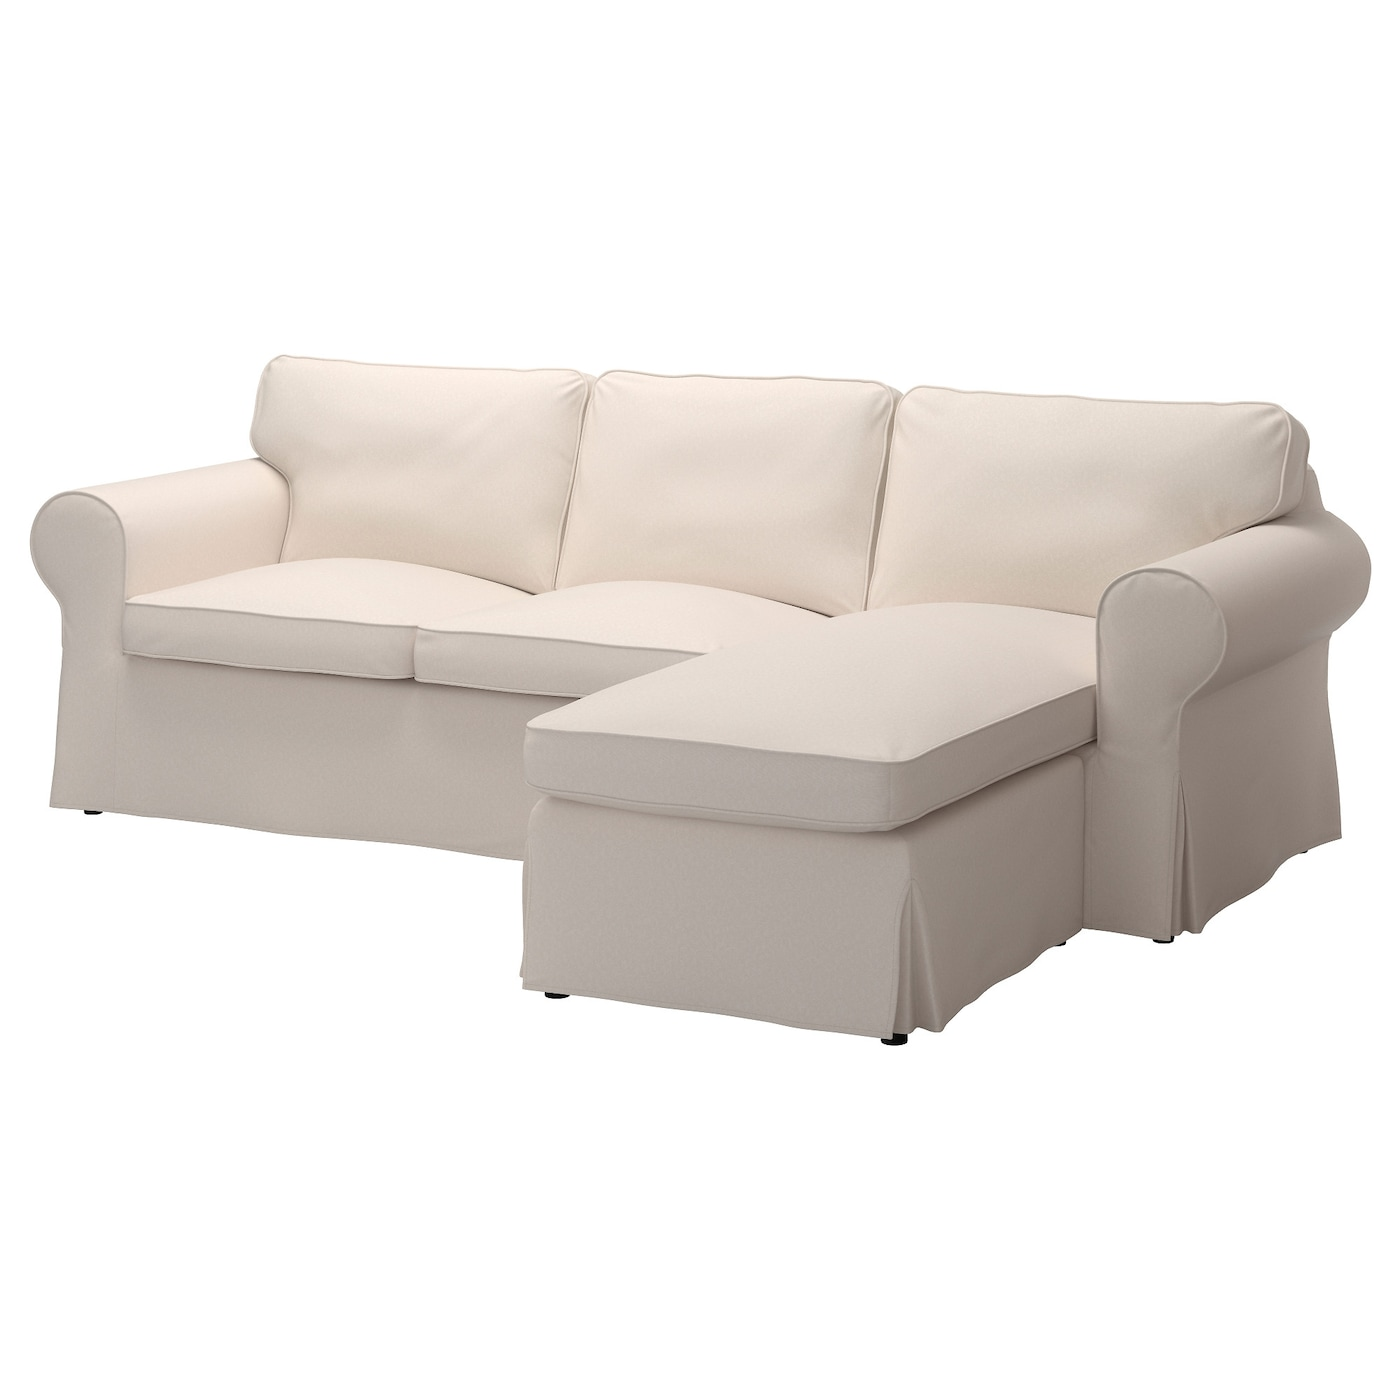 Ektorp two seat sofa and chaise longue lofallet beige ikea - Chaise longue jardin ikea ...